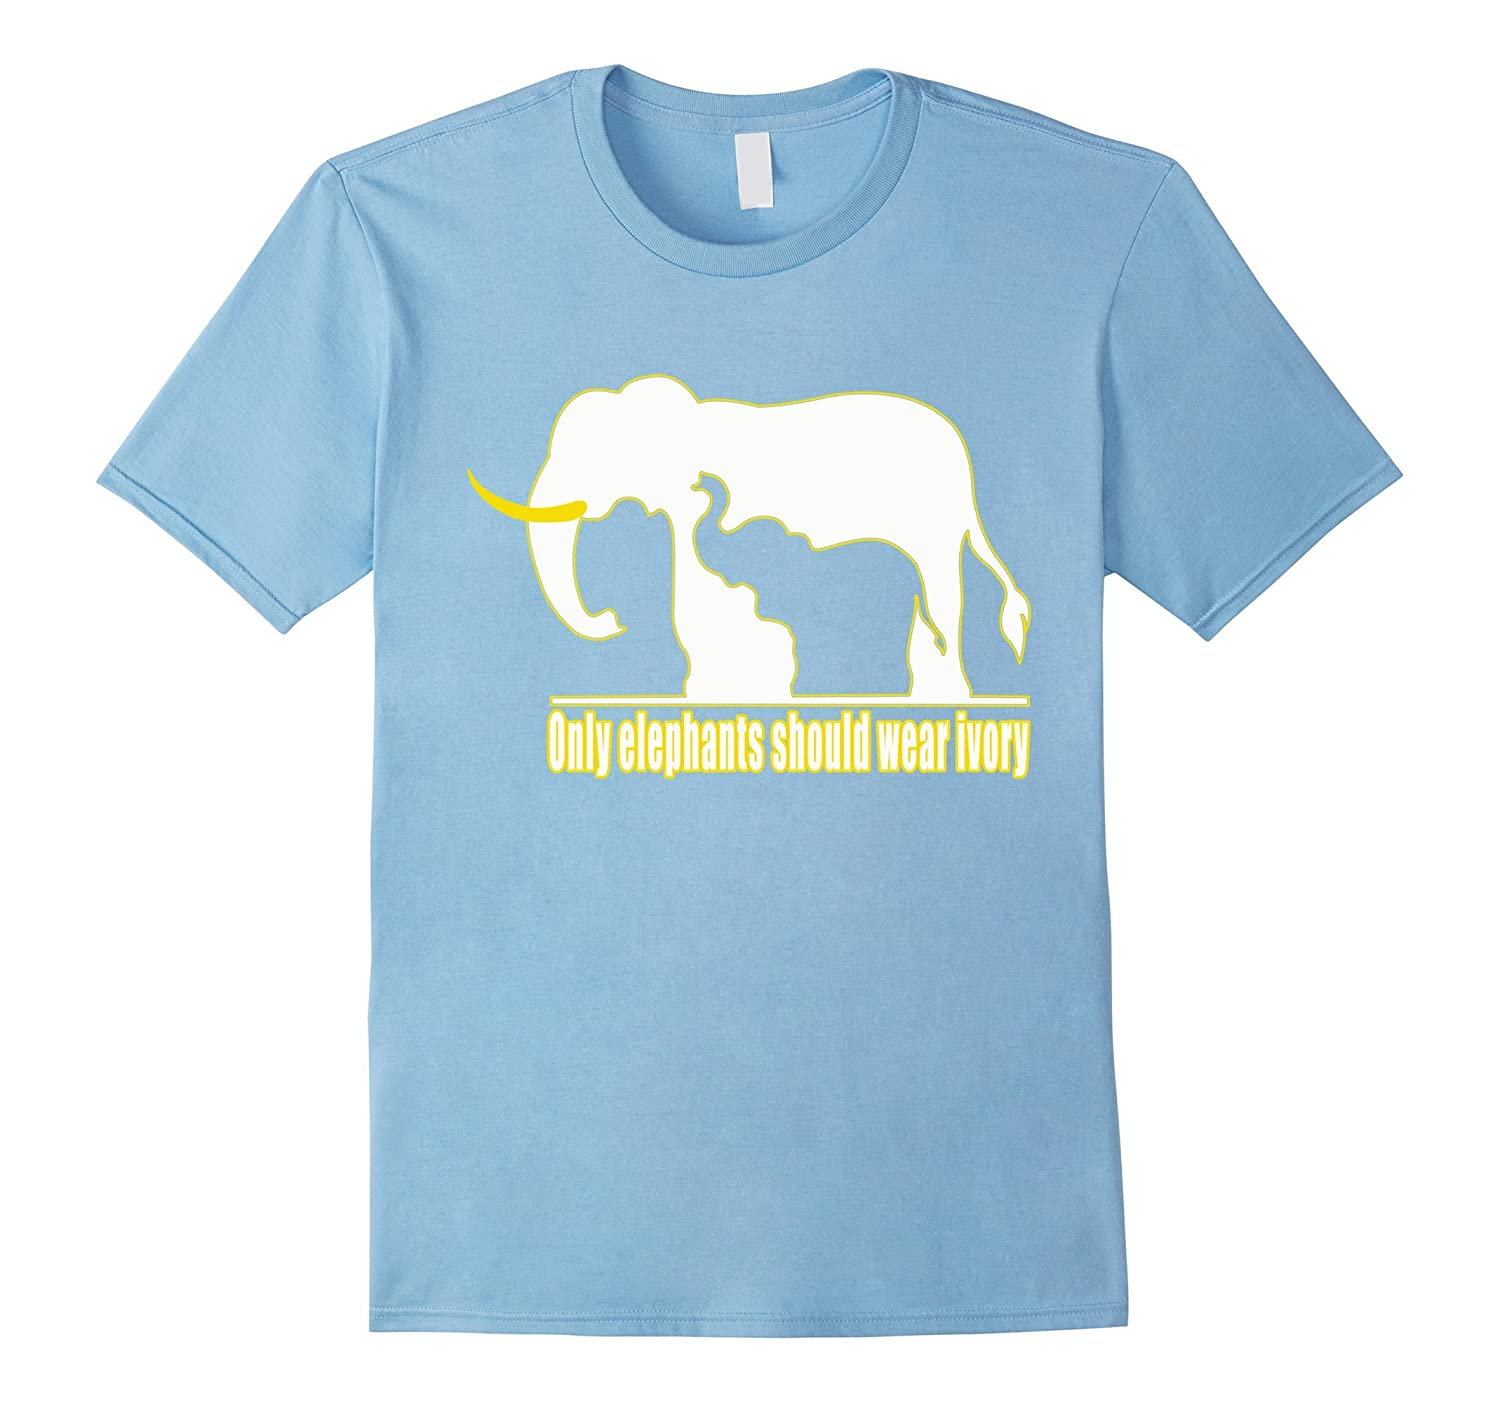 Elephant father and elephant son t-shirt Elephant shirt-Vaci